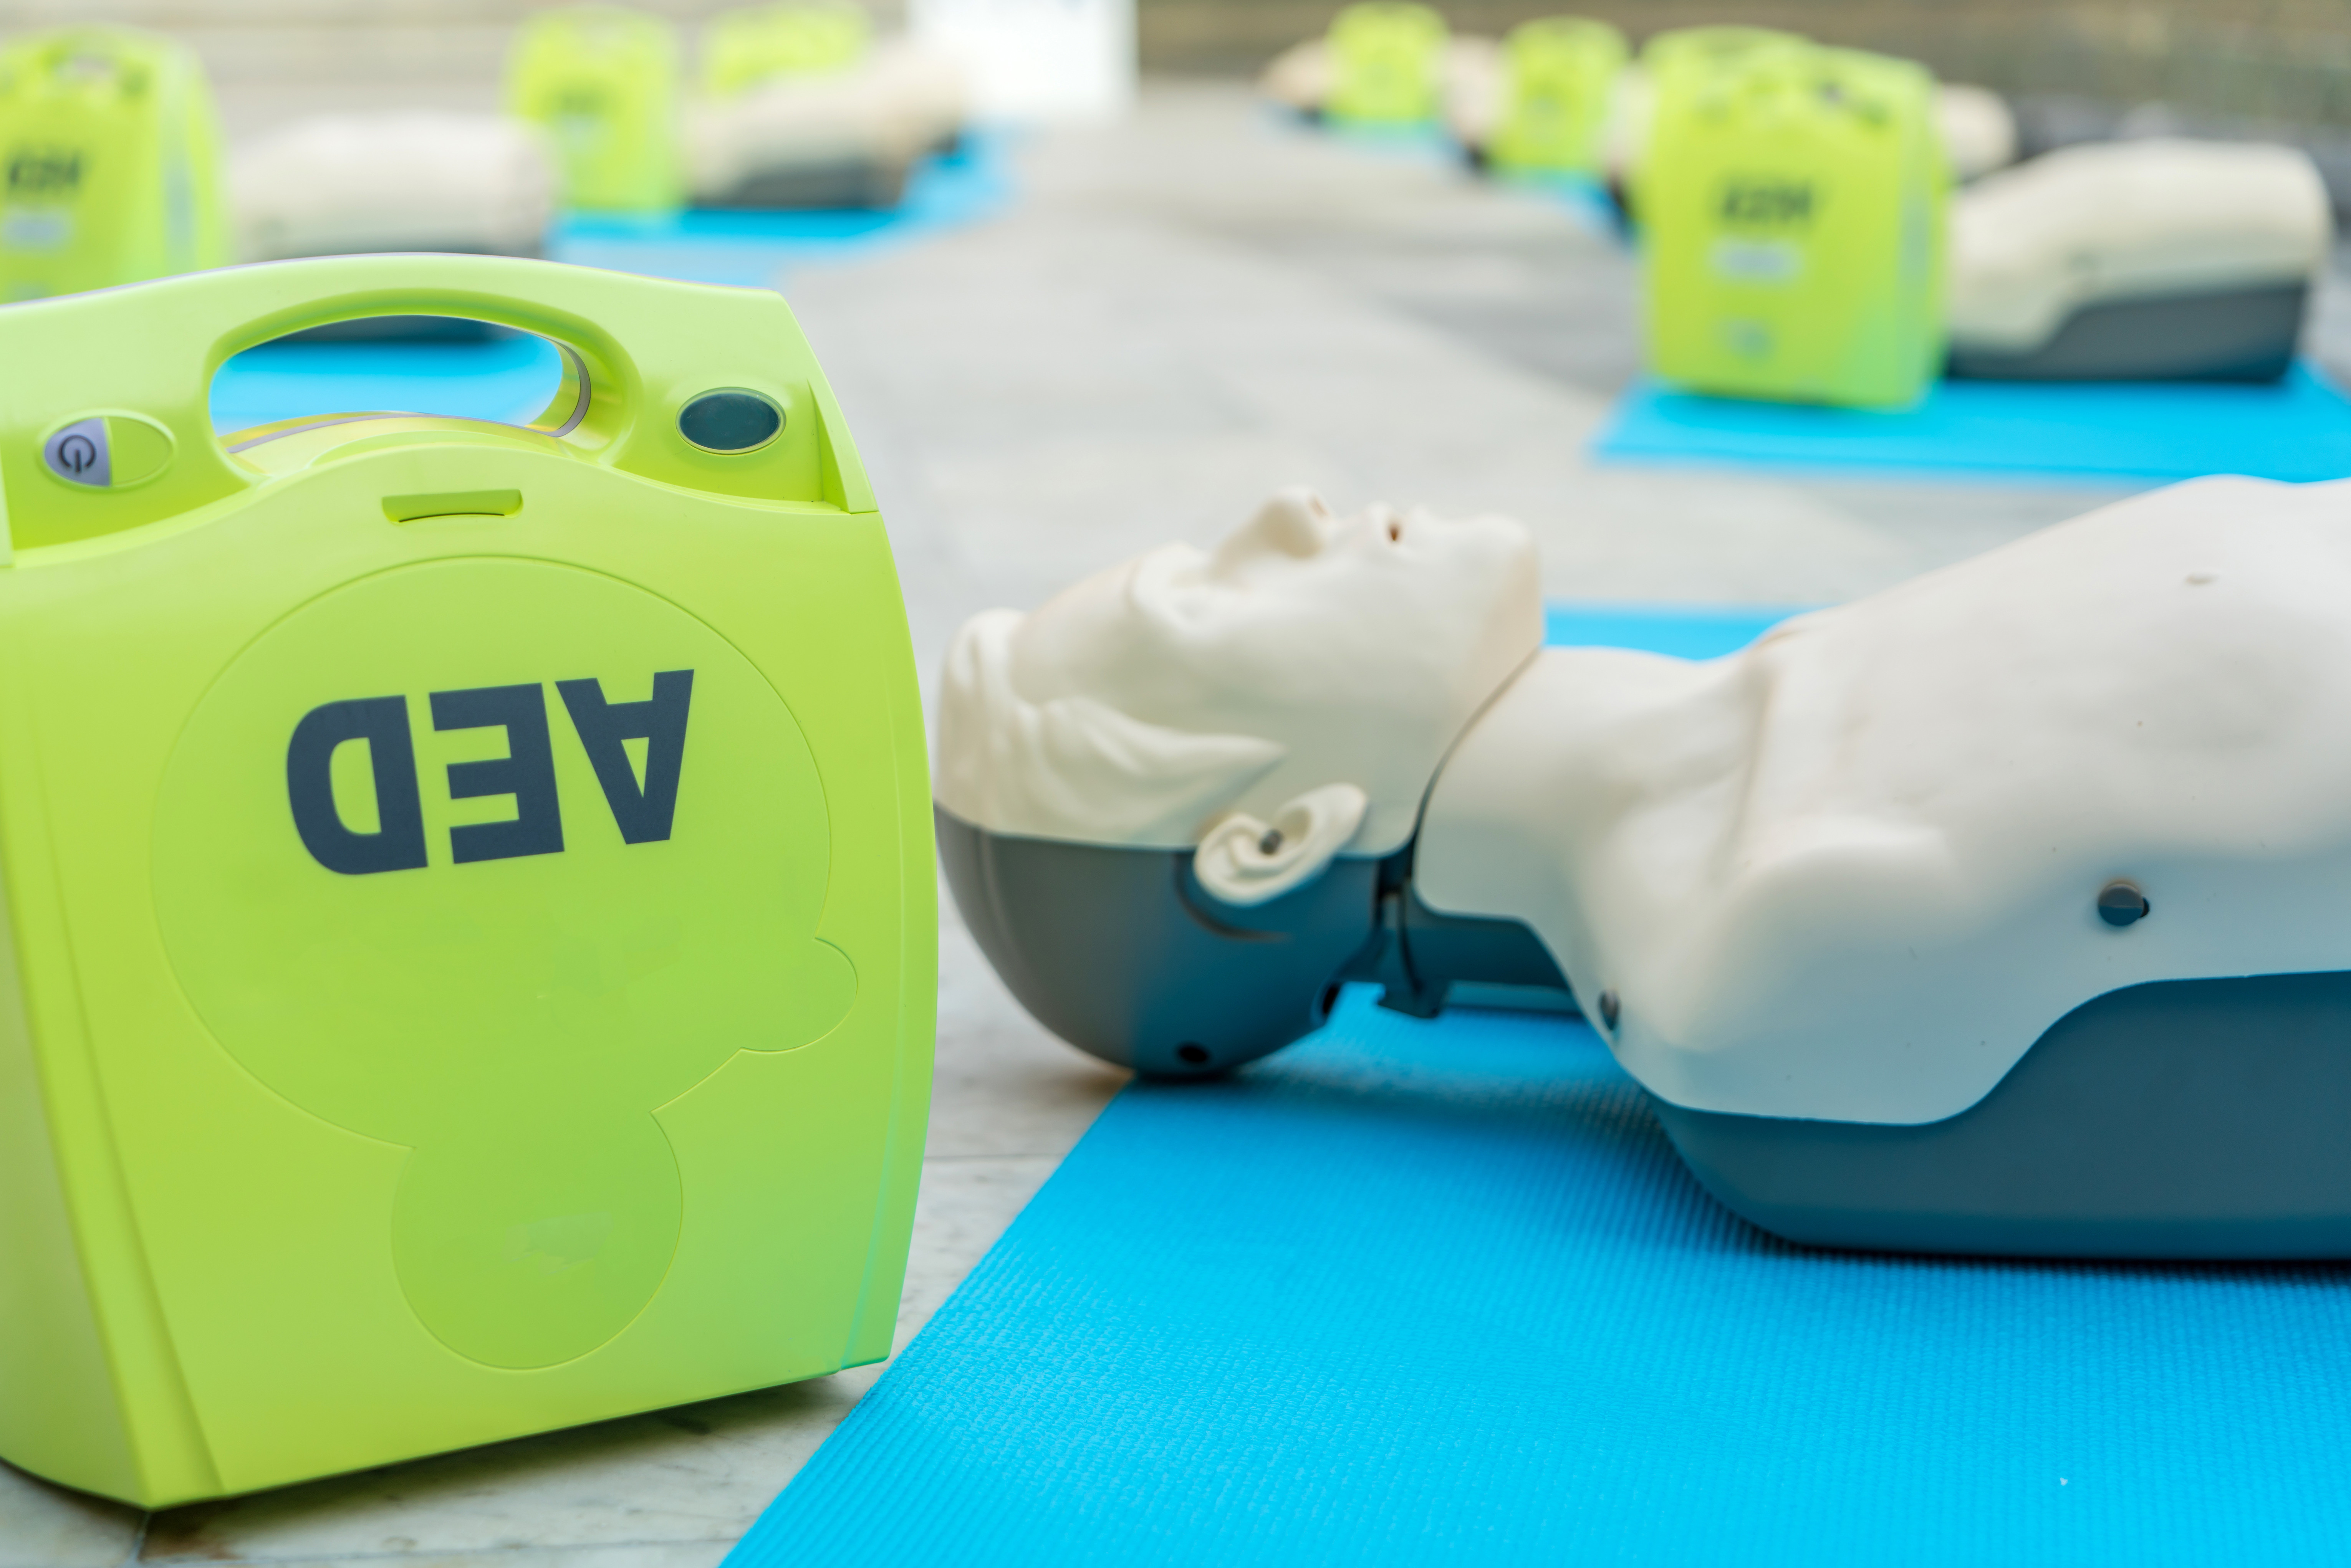 Level 2 : Basic Life Support/AED